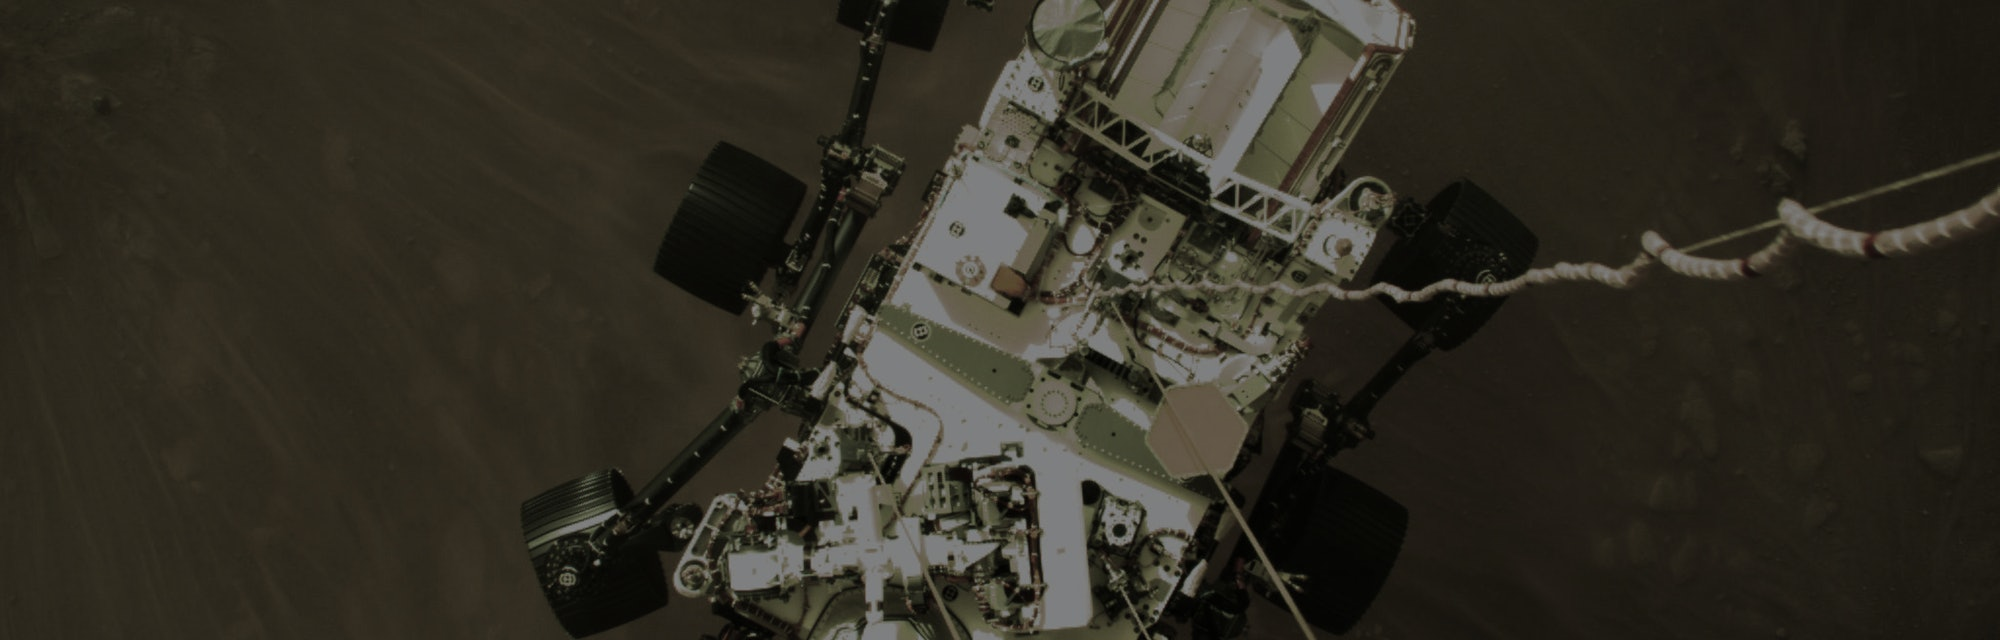 NASA's Mars Perseverance rover uses a processor from Apple's 1998 iMac G3.